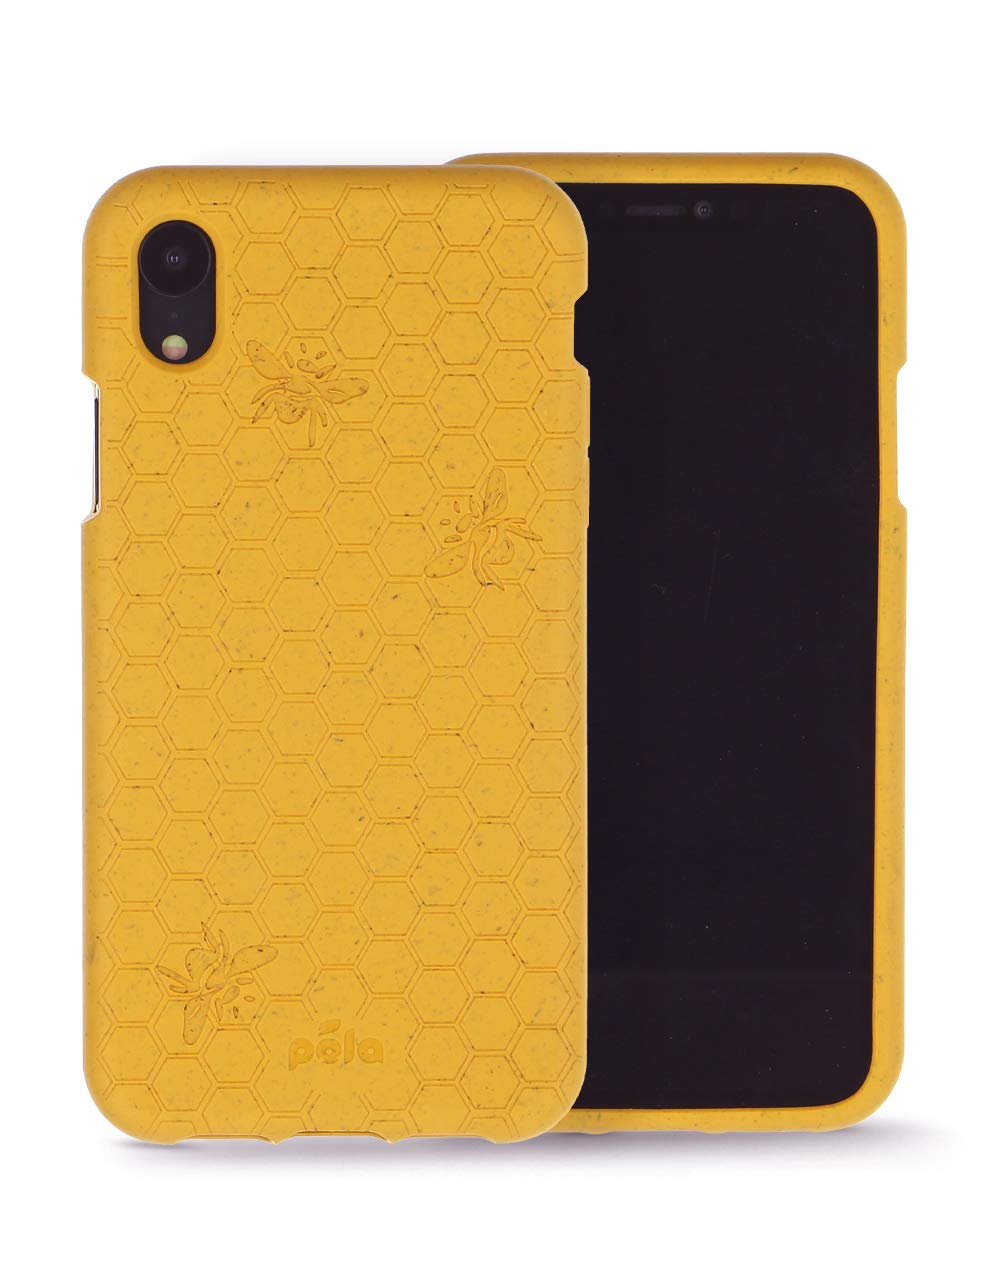 Pela: Phone Case for iPhone XR - 100% Compostable and Biodegradable - Eco-Friendly - Made from Plants (XR Honey Bee)